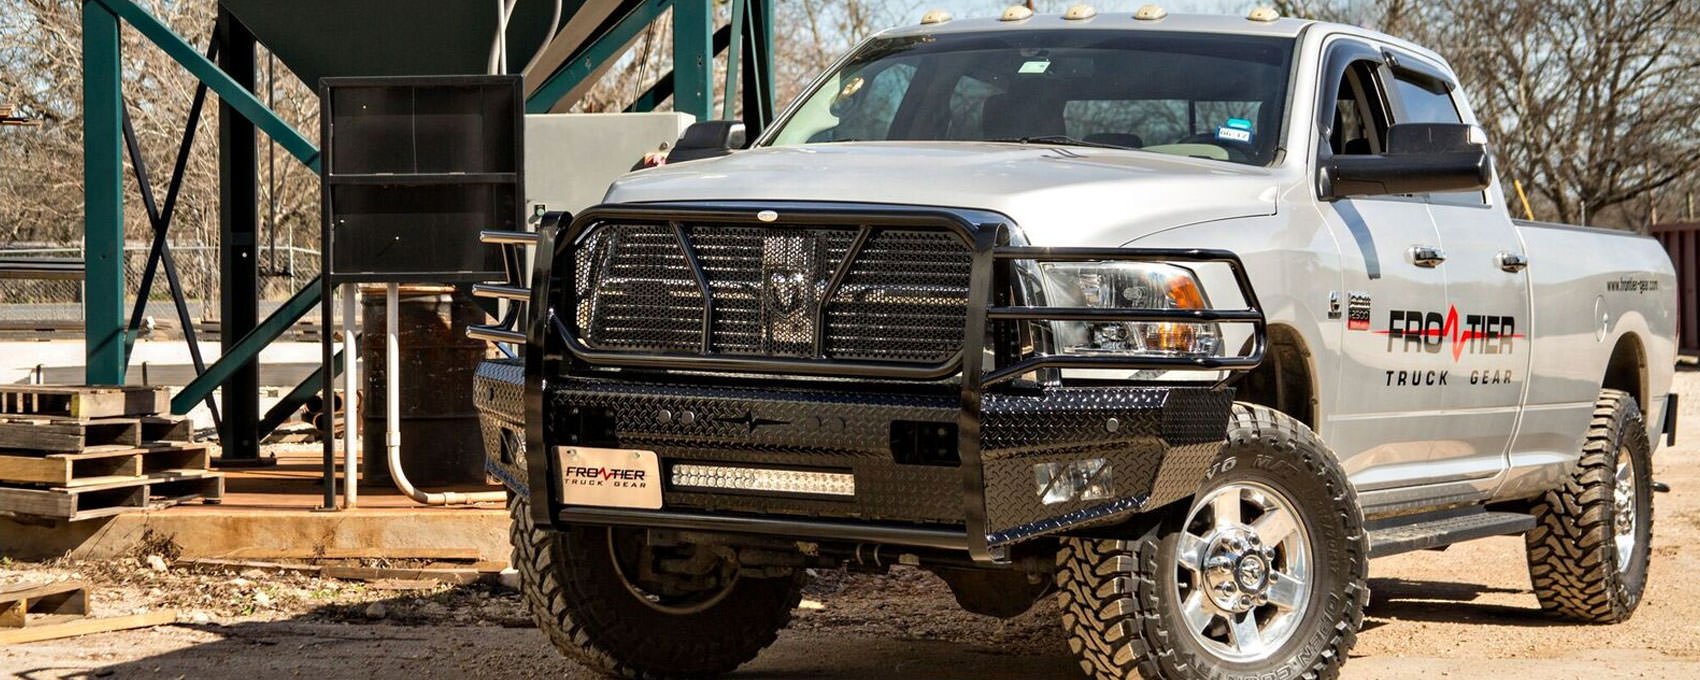 Frontier Gear New Front Bumper Replacement on Dodge Ram Rear Bumper Guards